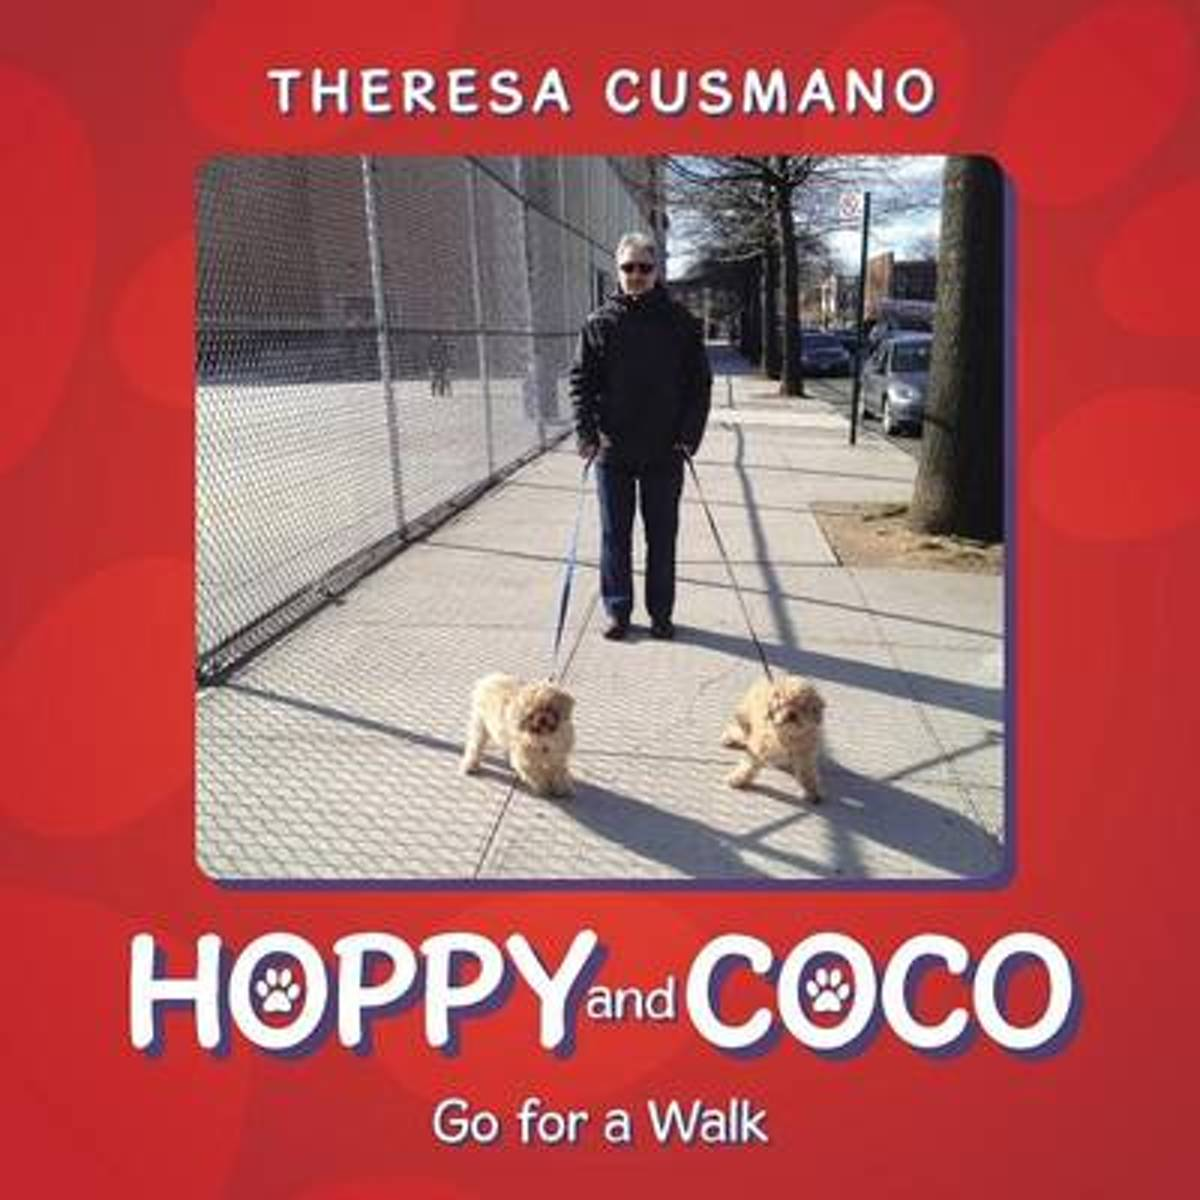 Hoppy and Coco Go for a Walk